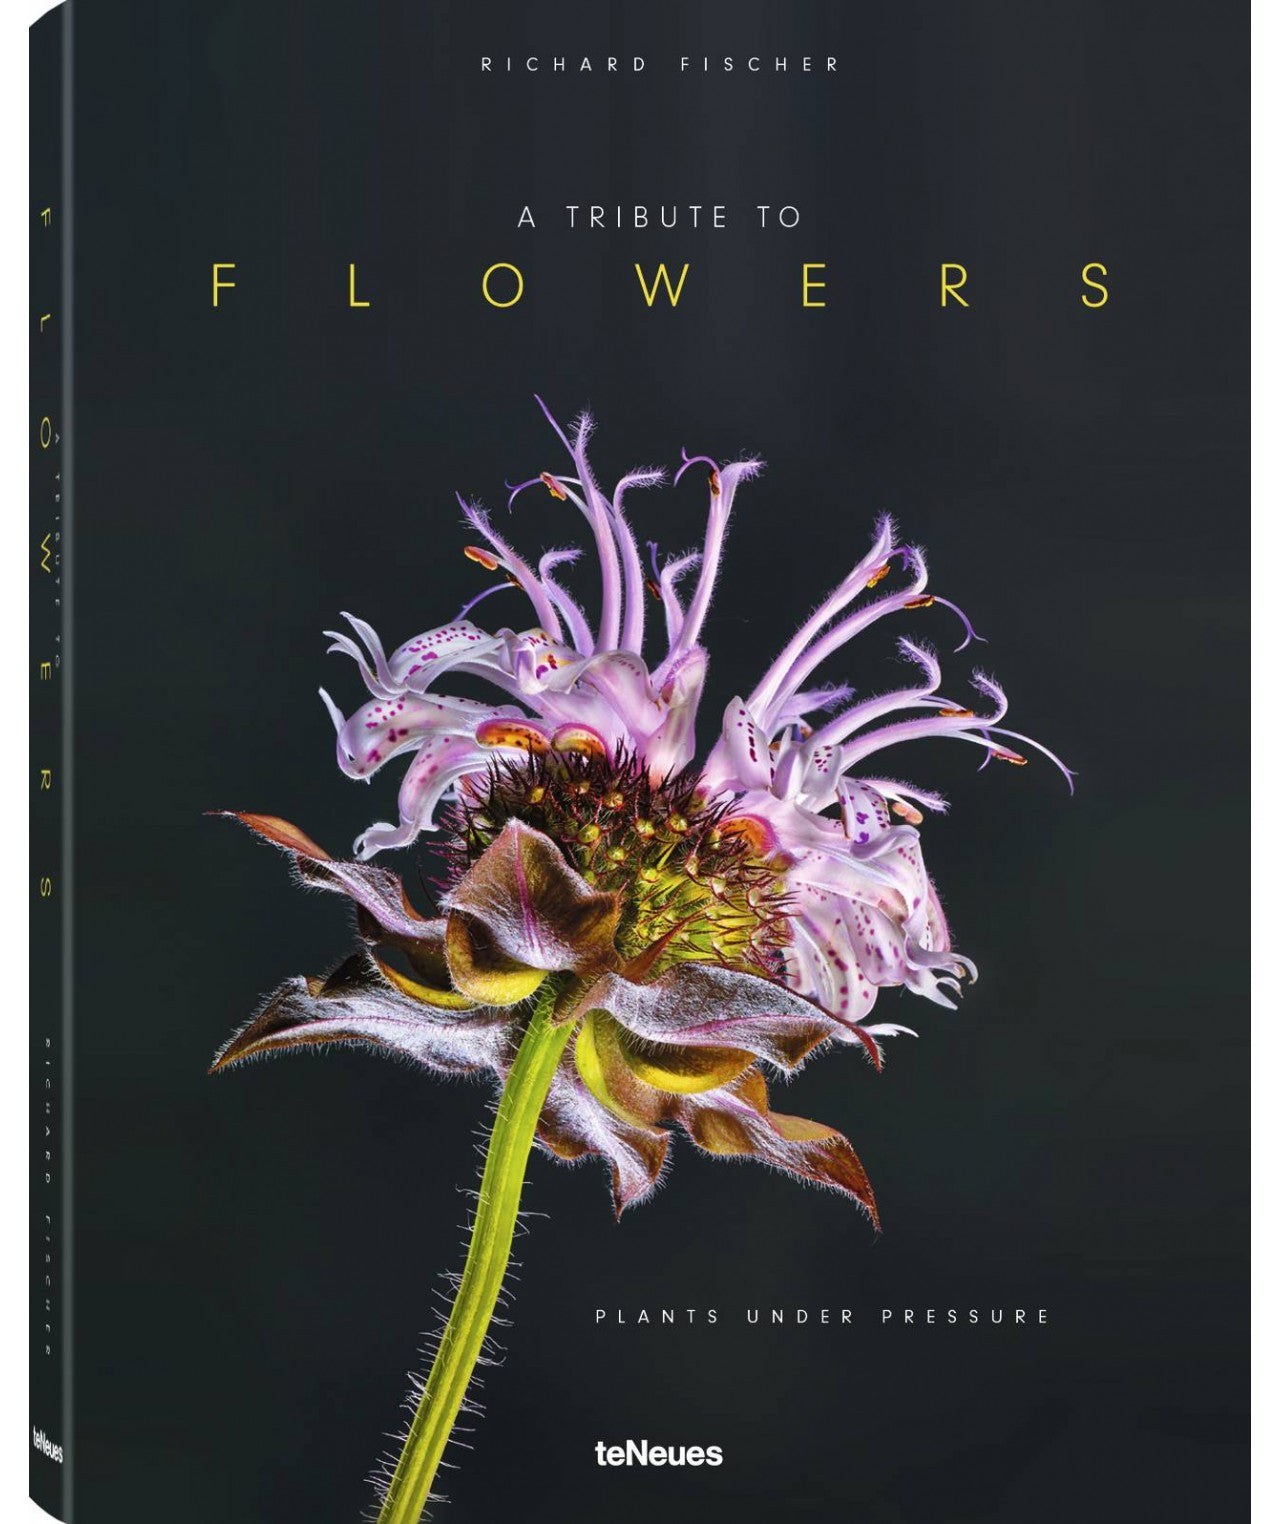 A Tribute to Flowers by Richard Fischer